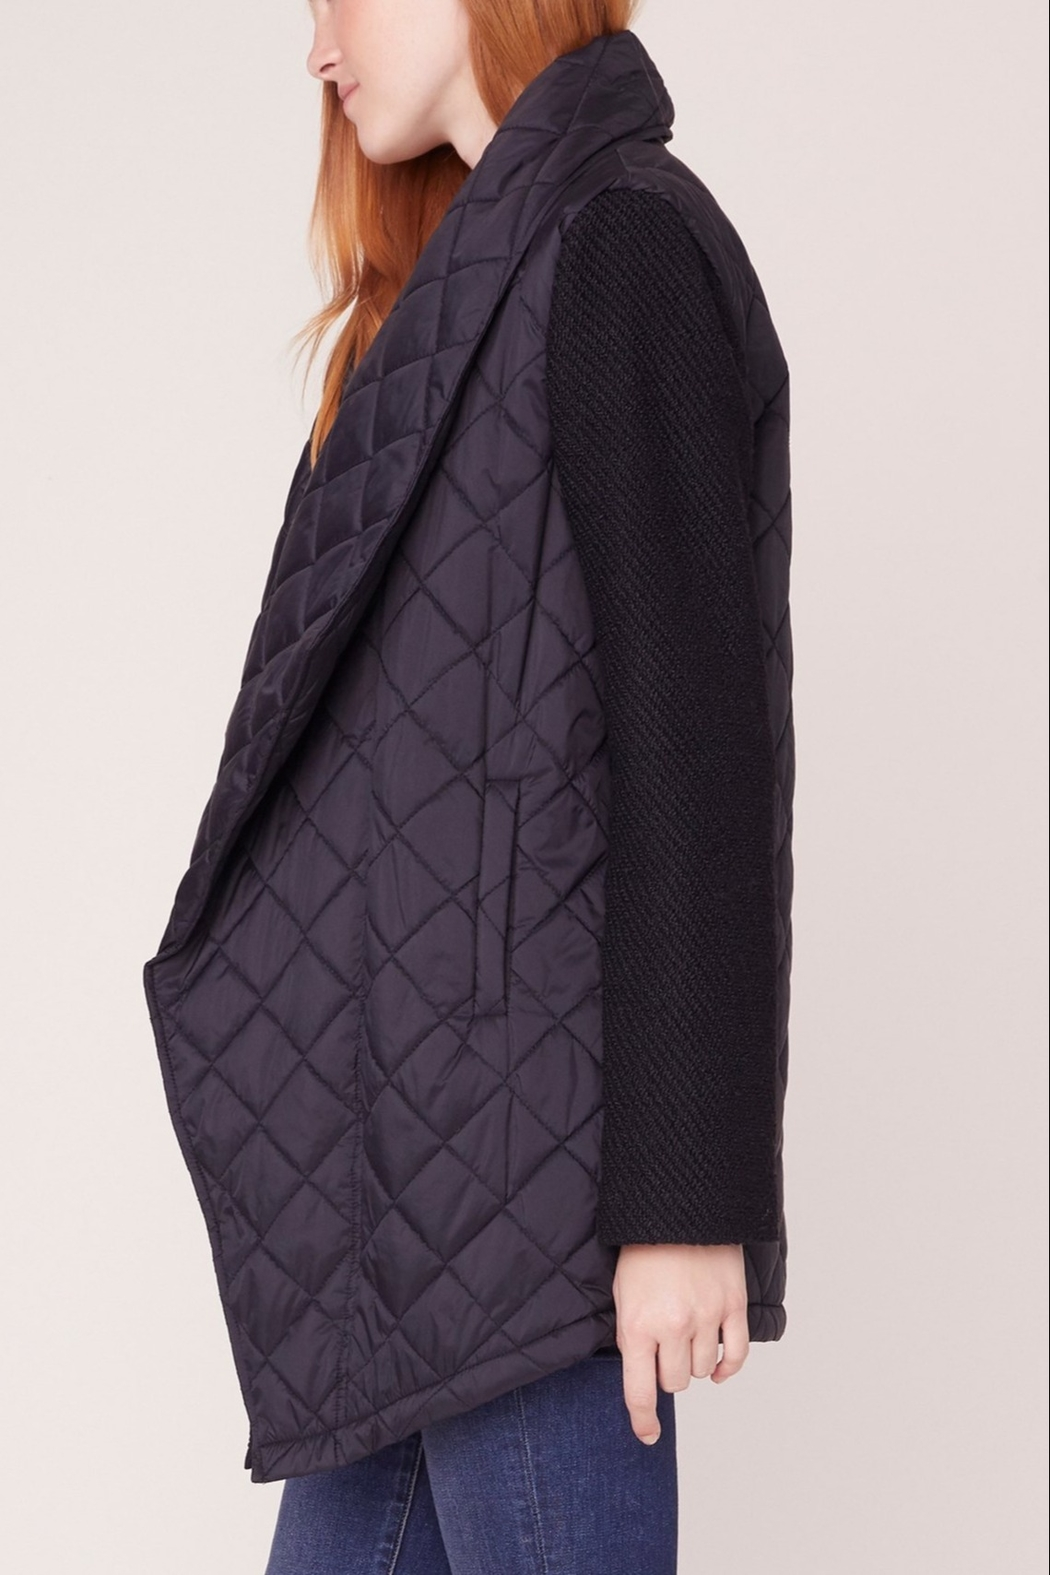 Jack by BB Dakota Quilted Long Jacket - Side Cropped Image